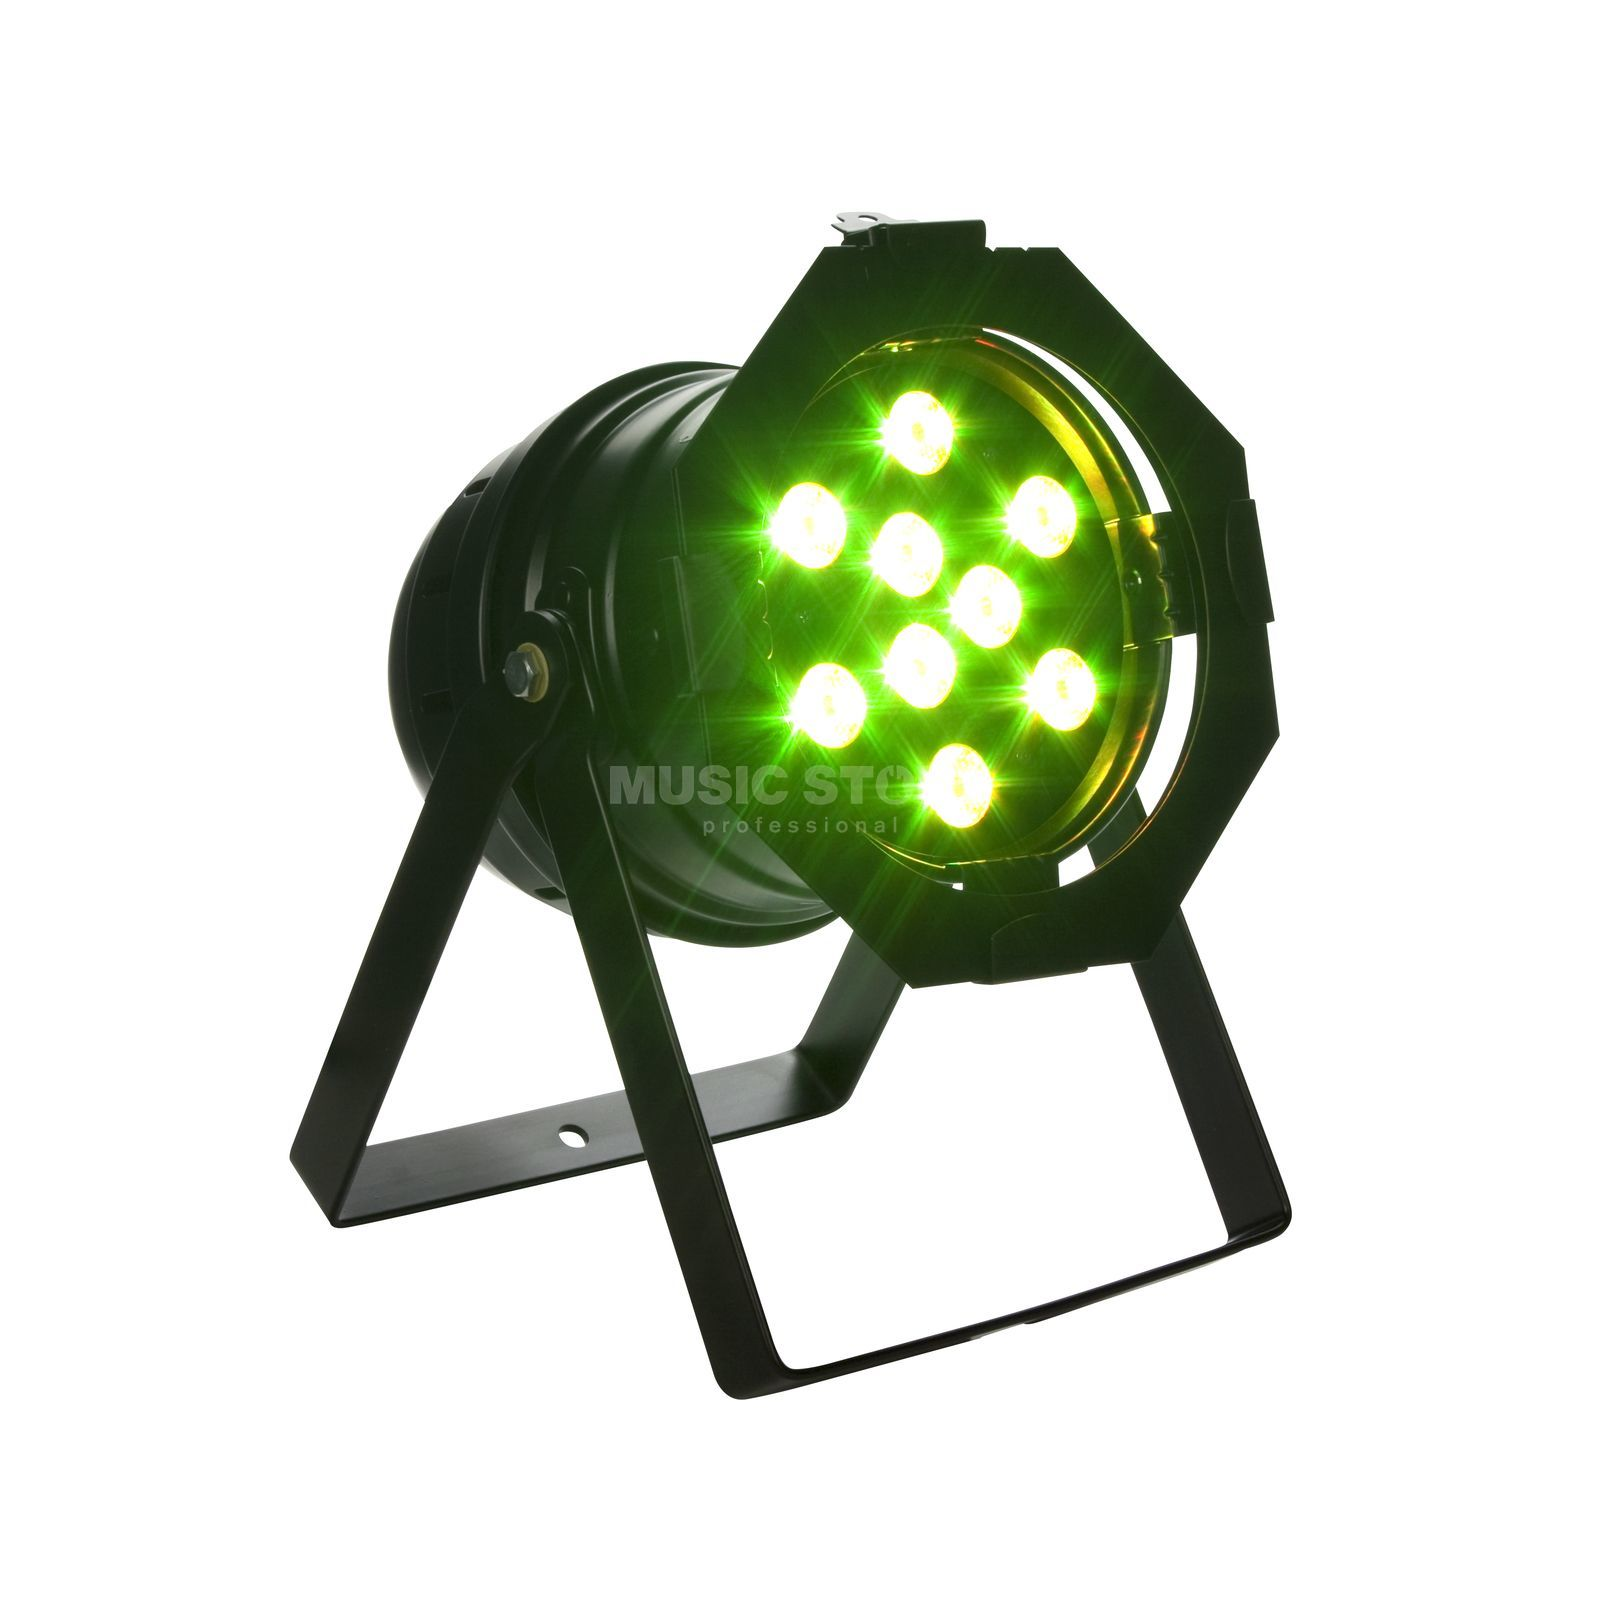 lightmaXX LED PAR 56 TRI black 9x 3W RGB-TRI LEDs Produktbild